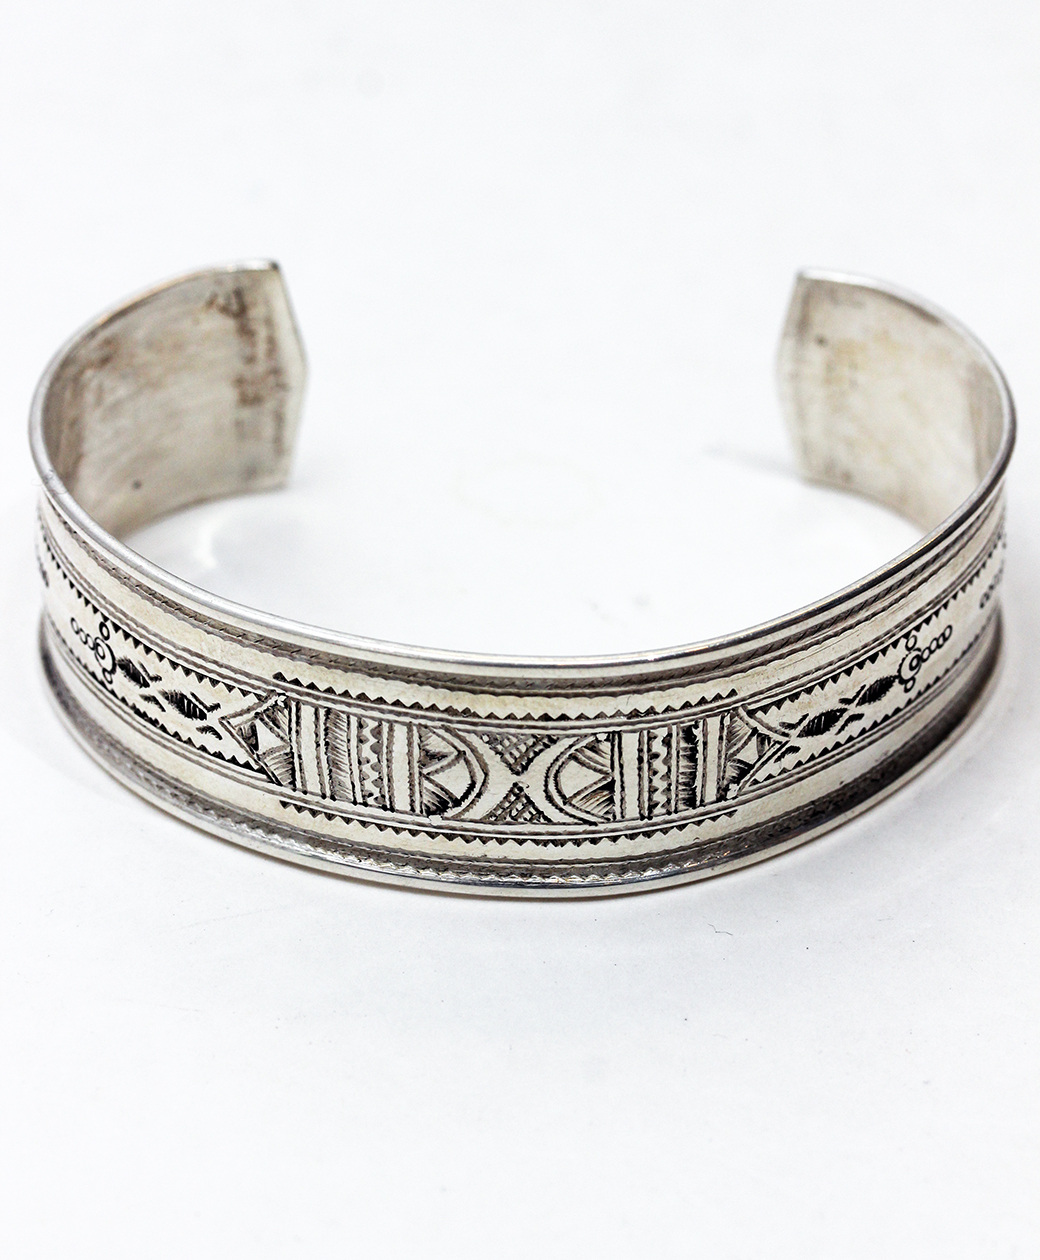 TUAREG SILVER JEWELRY BANGLE(A)